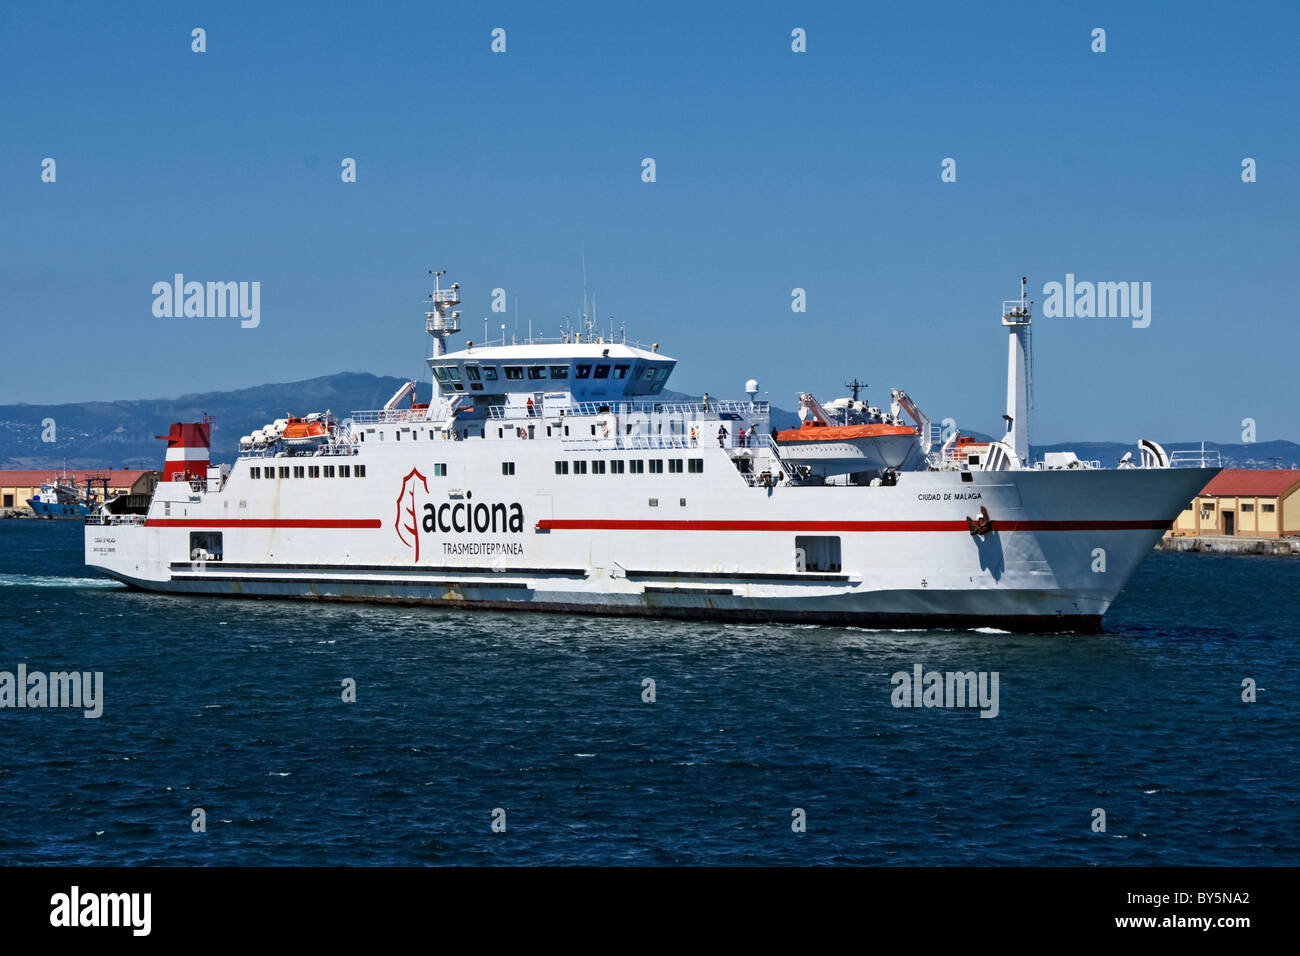 Acciona Trasmediterranea ferry Ciudad de Malaga at Ceuta in Spanish Morocco - Stock Image